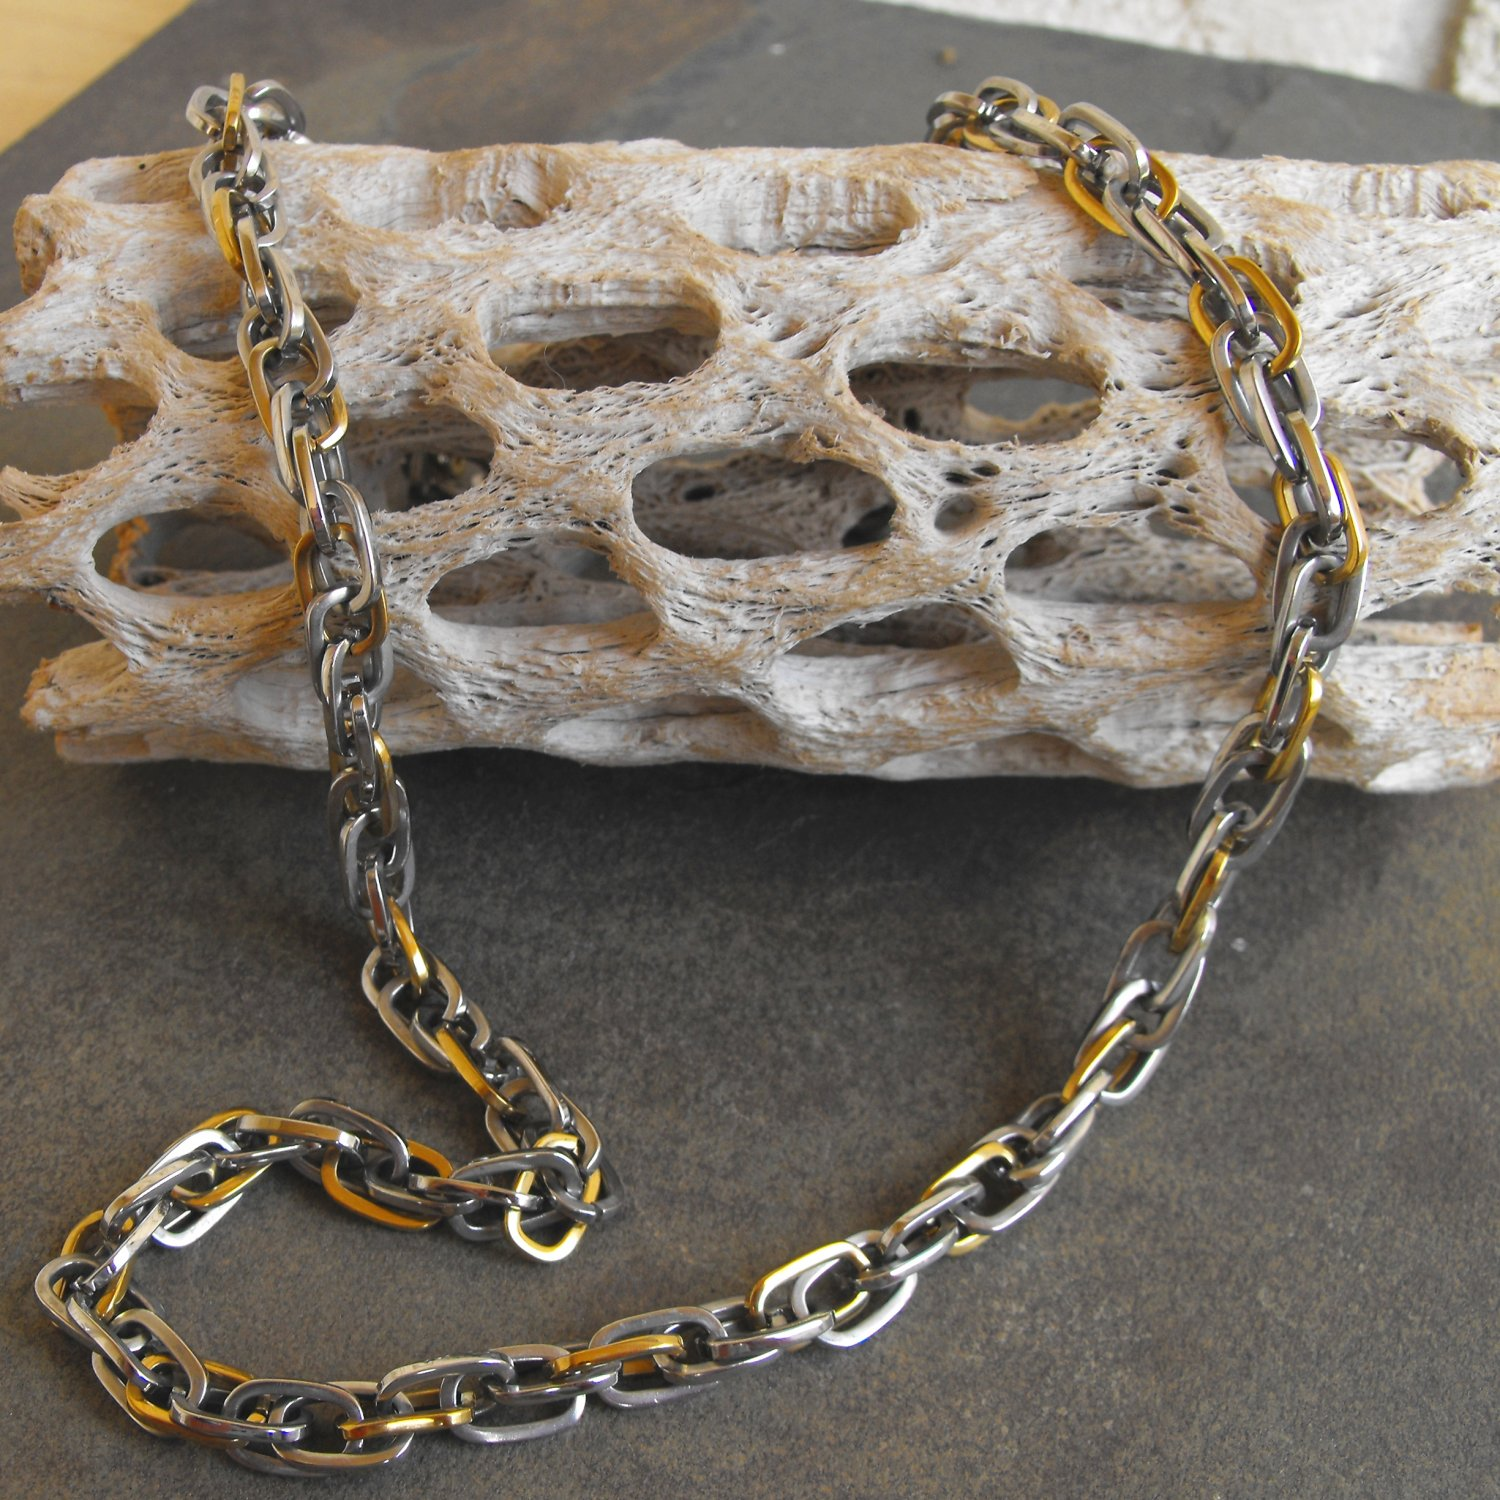 Two Tone Stainless Steel Necklace